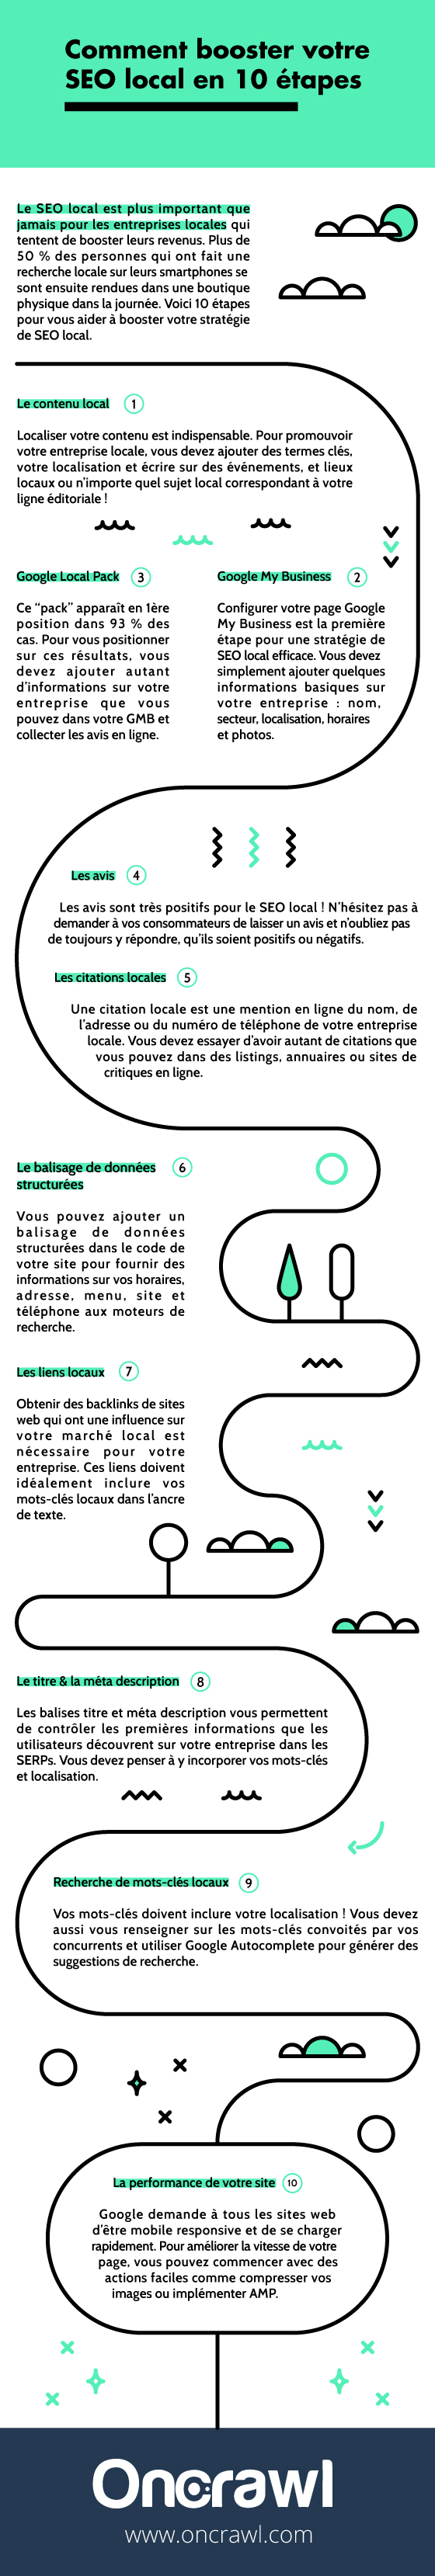 Infographie : 10 étapes pour booster son SEO local